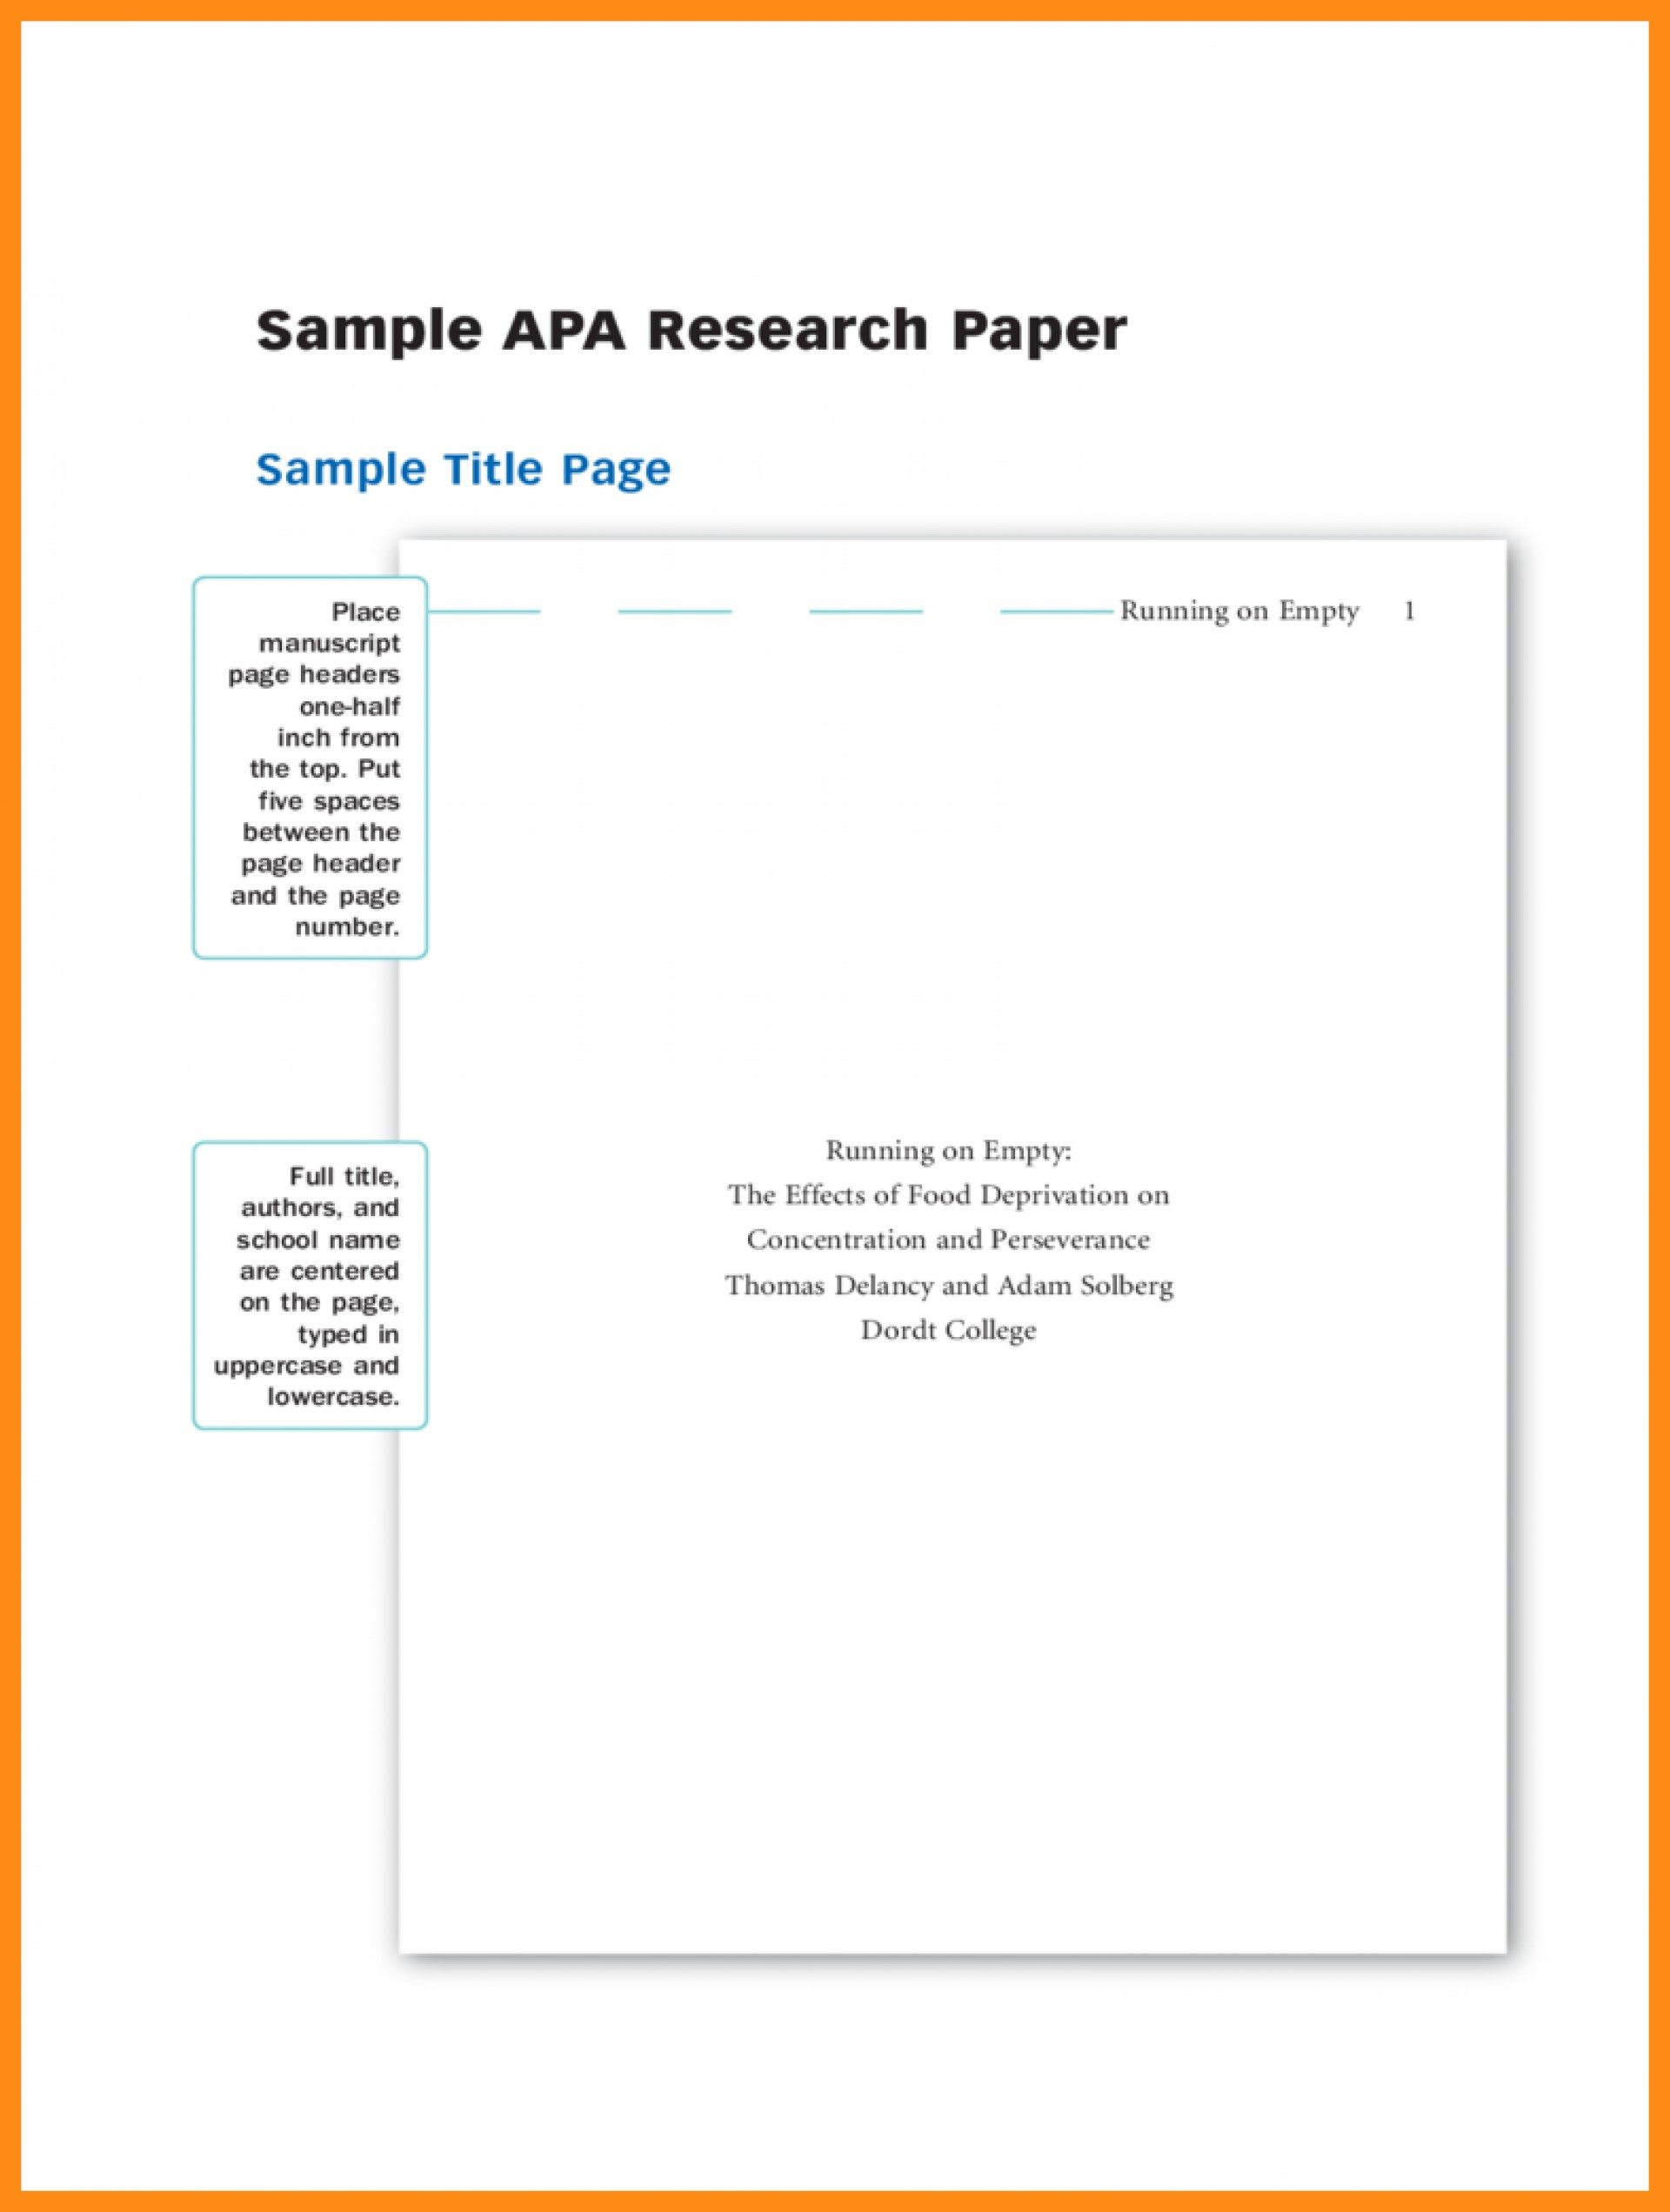 010 Cover Sheet Research Paper Samples Of Papers Apa Format Title Page Sample Dolap Magnetband Formidable For Mla Example Harvard 1920